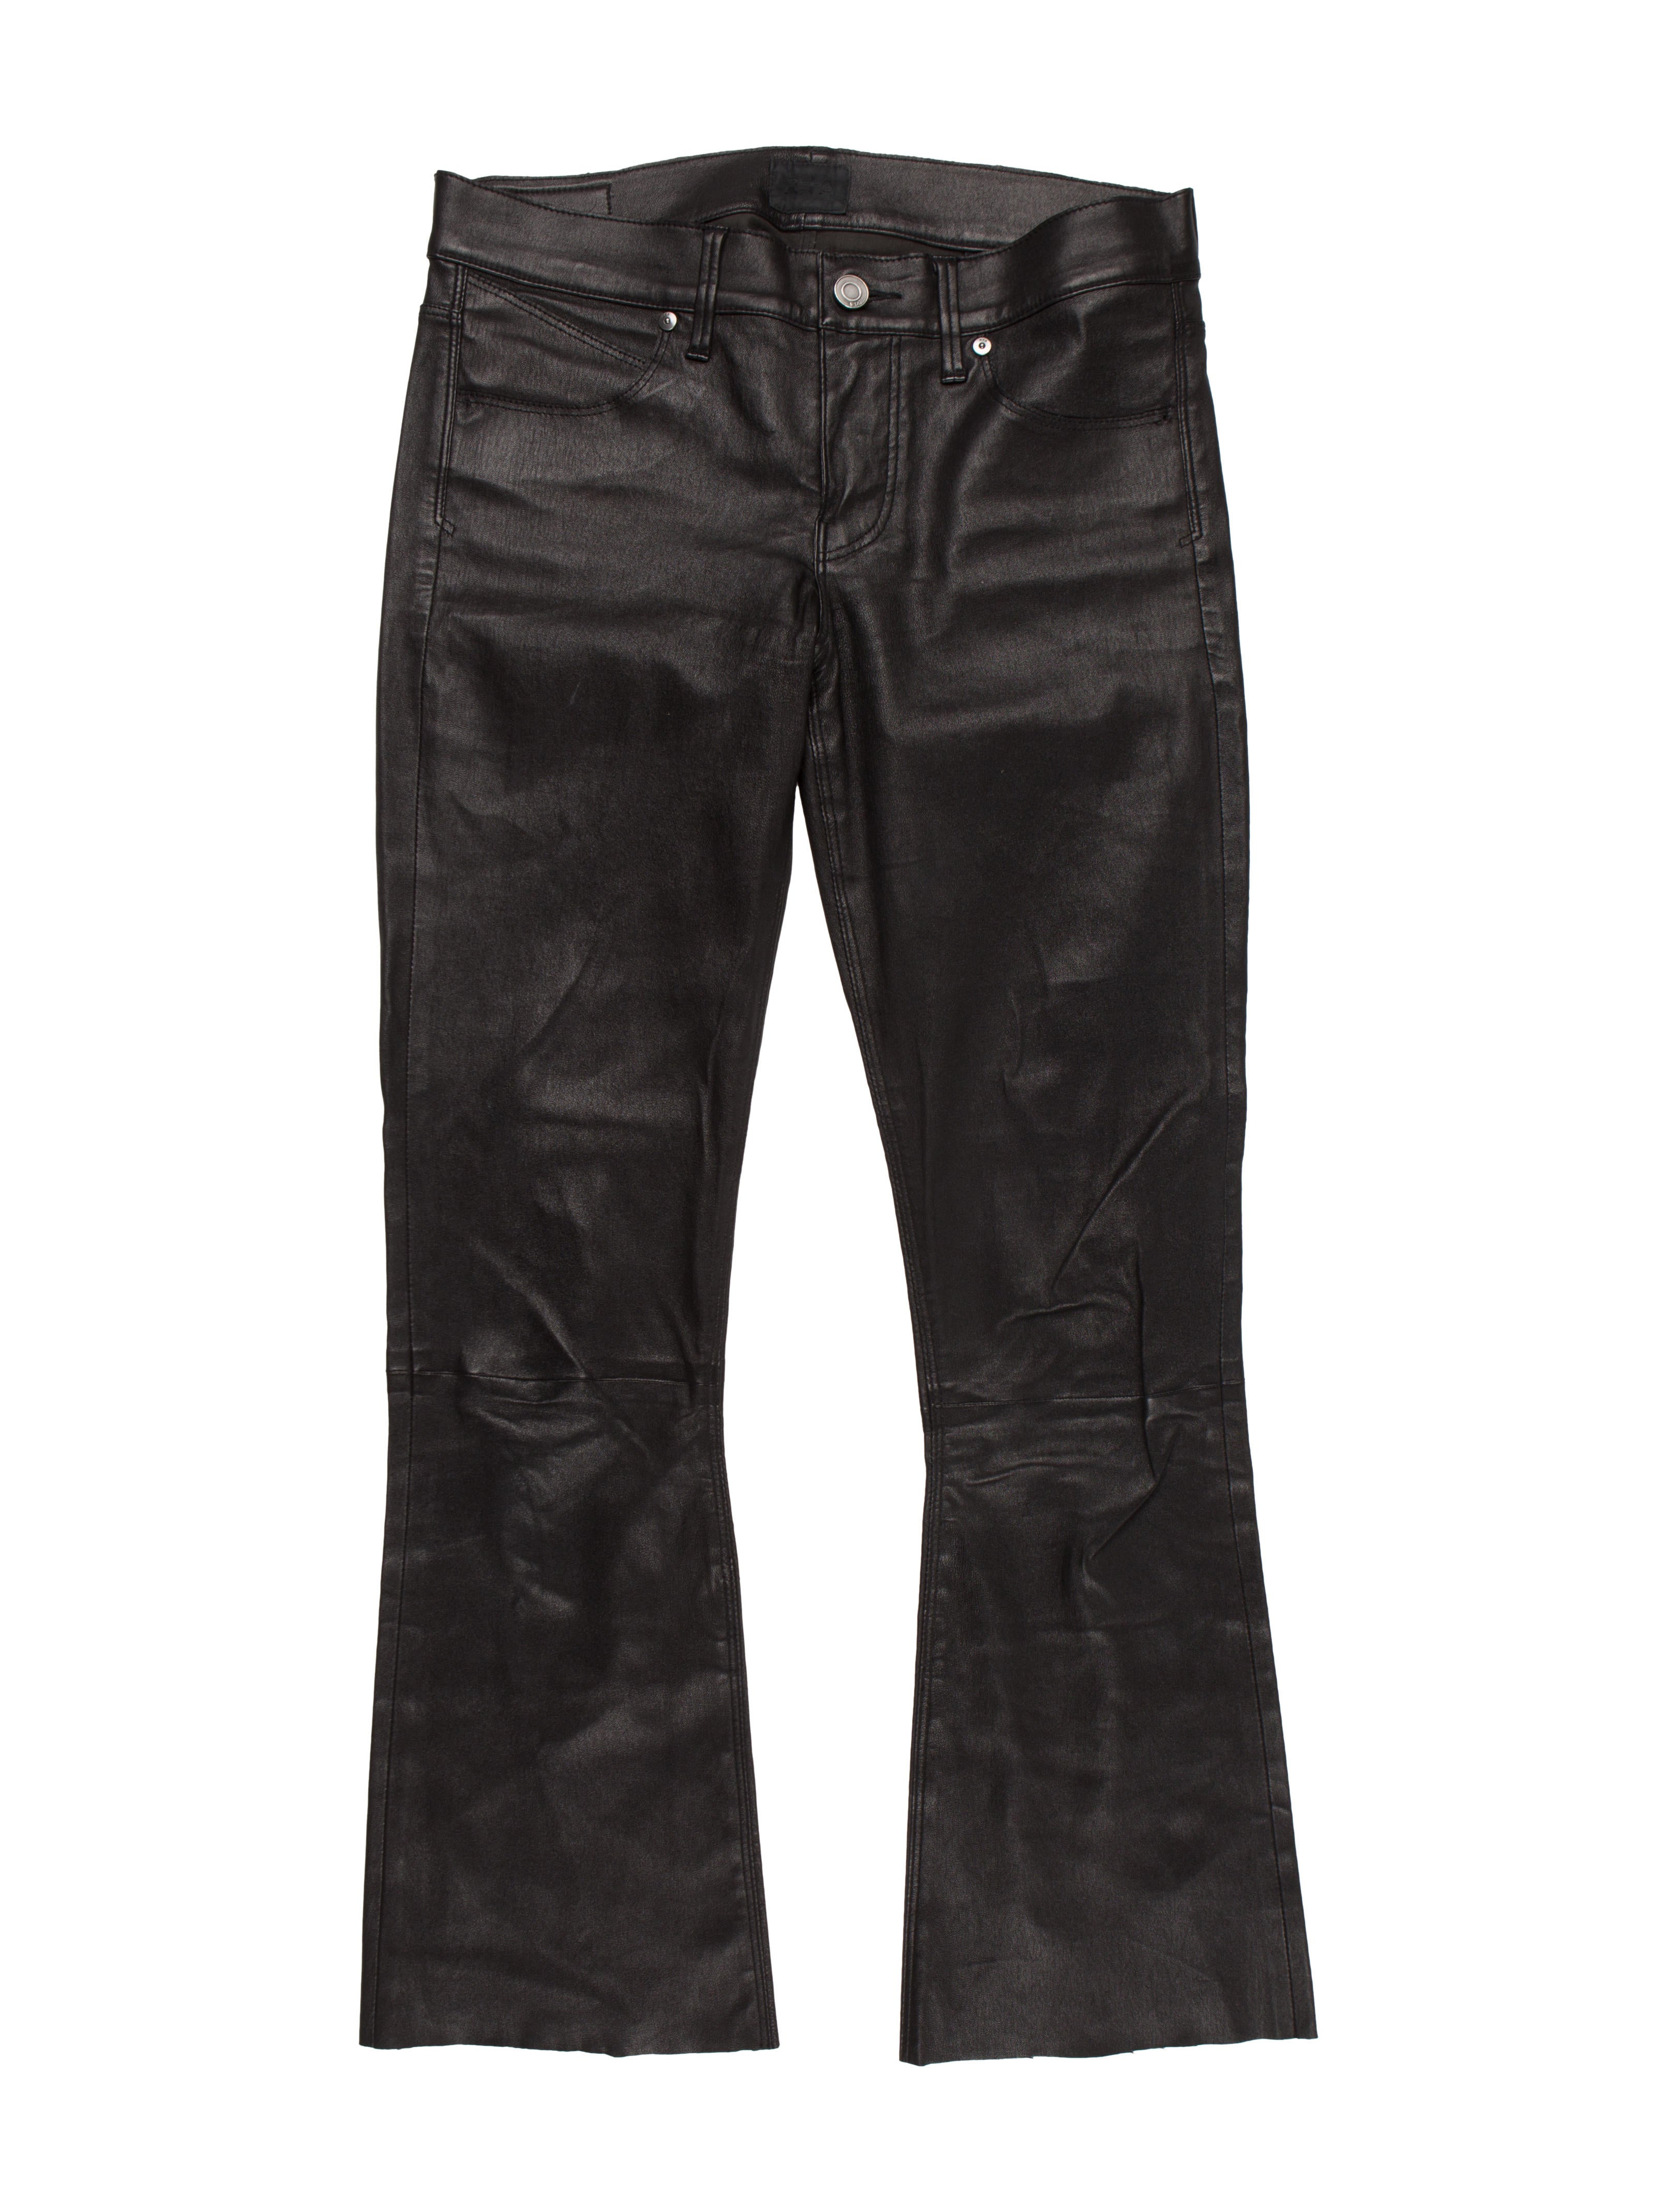 best selection of limited style high fashion Mid-Rise Leather Pants